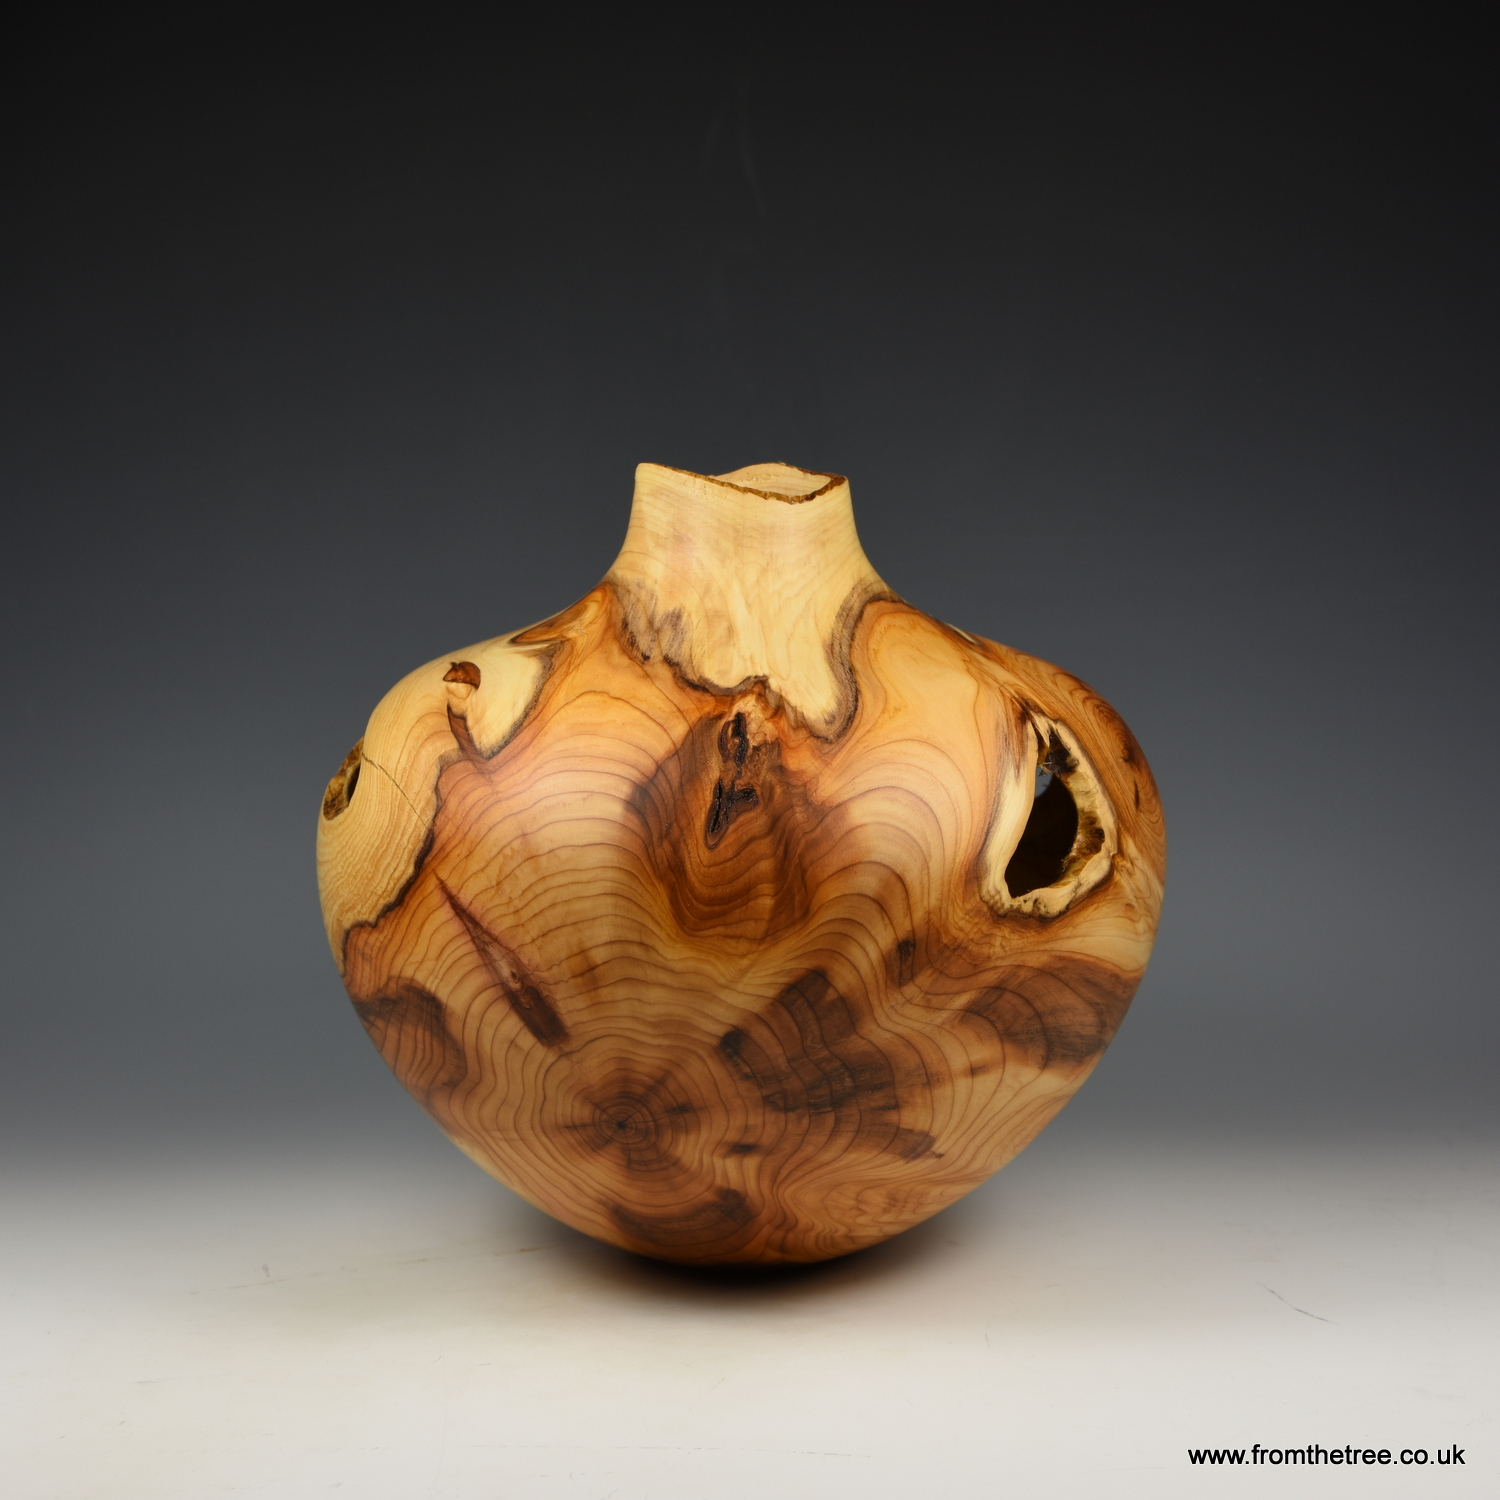 Natural edge yew hollow form